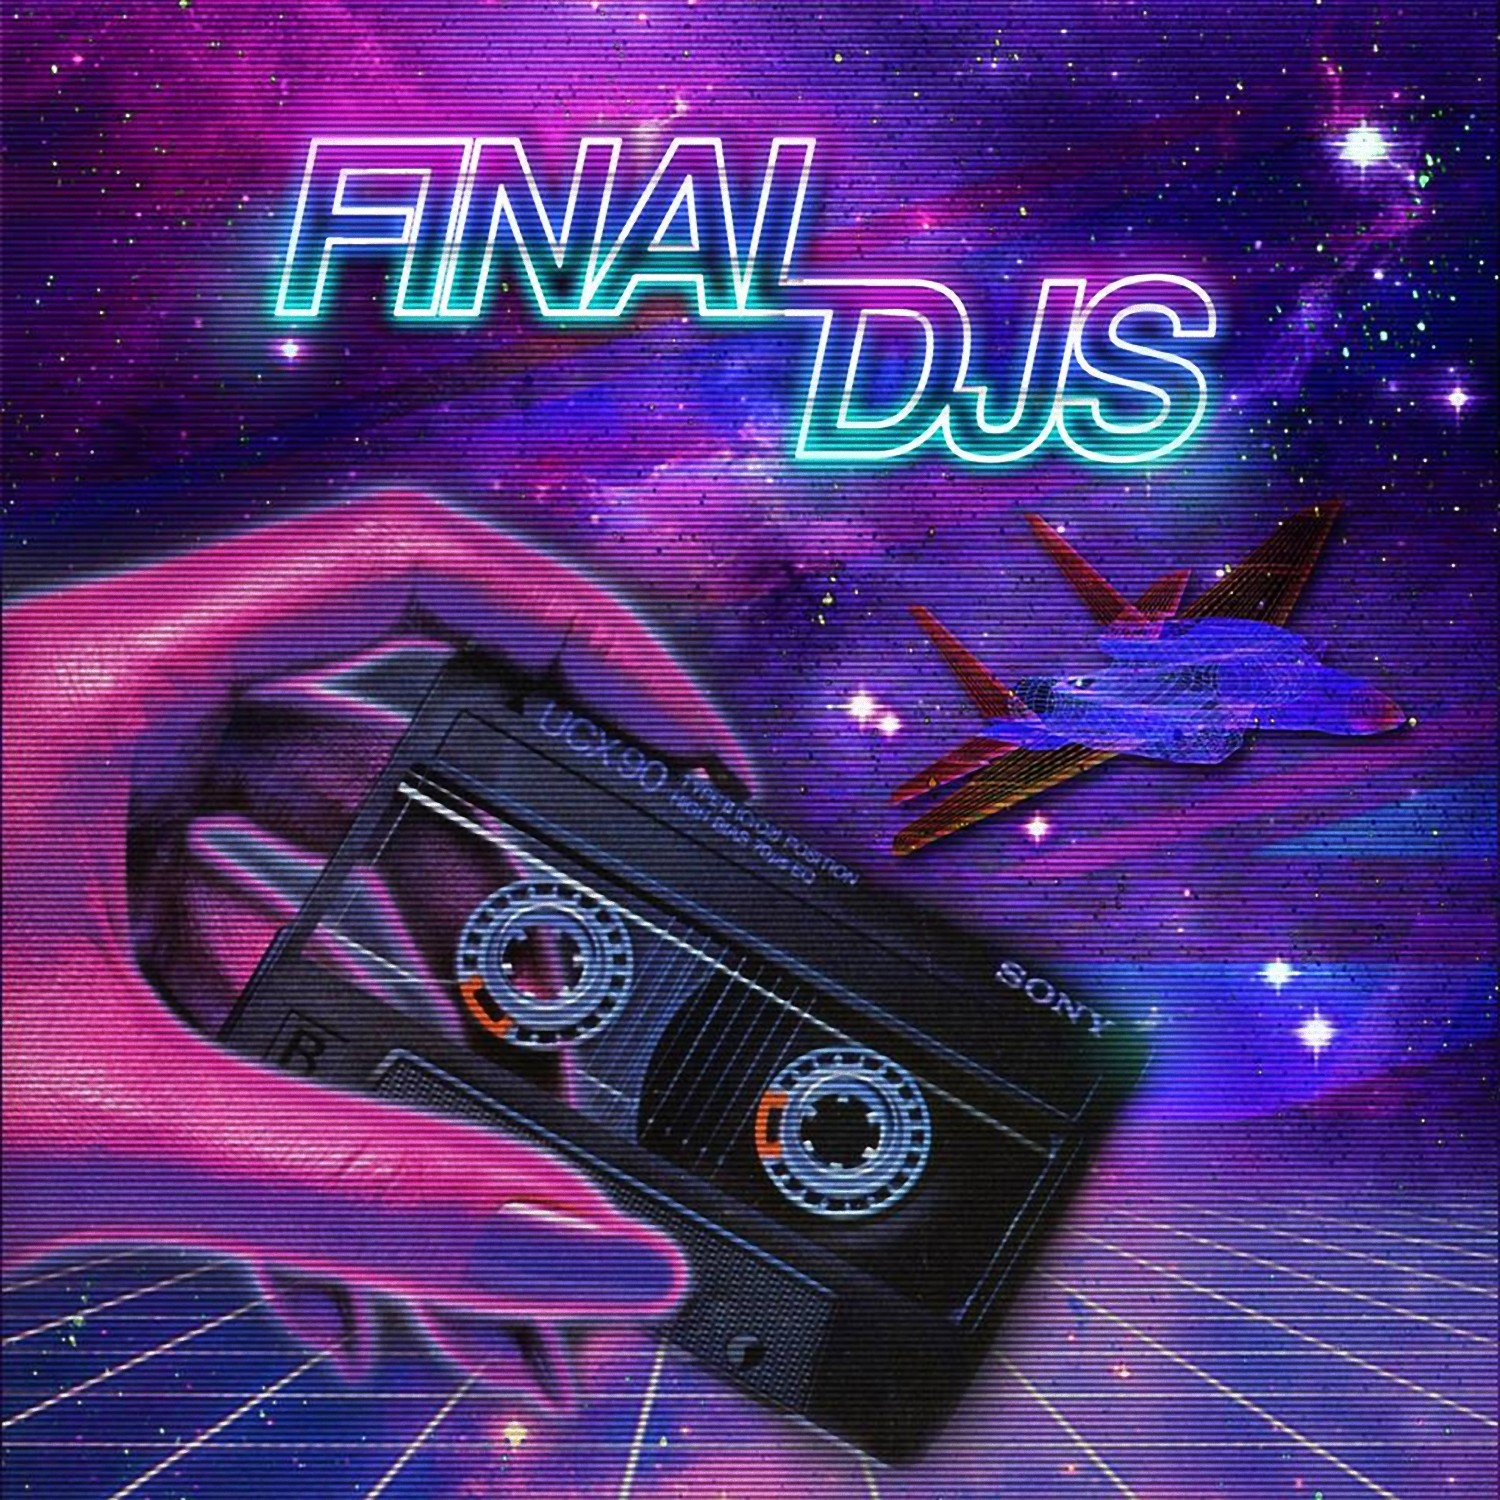 Final Djs Free Downloads